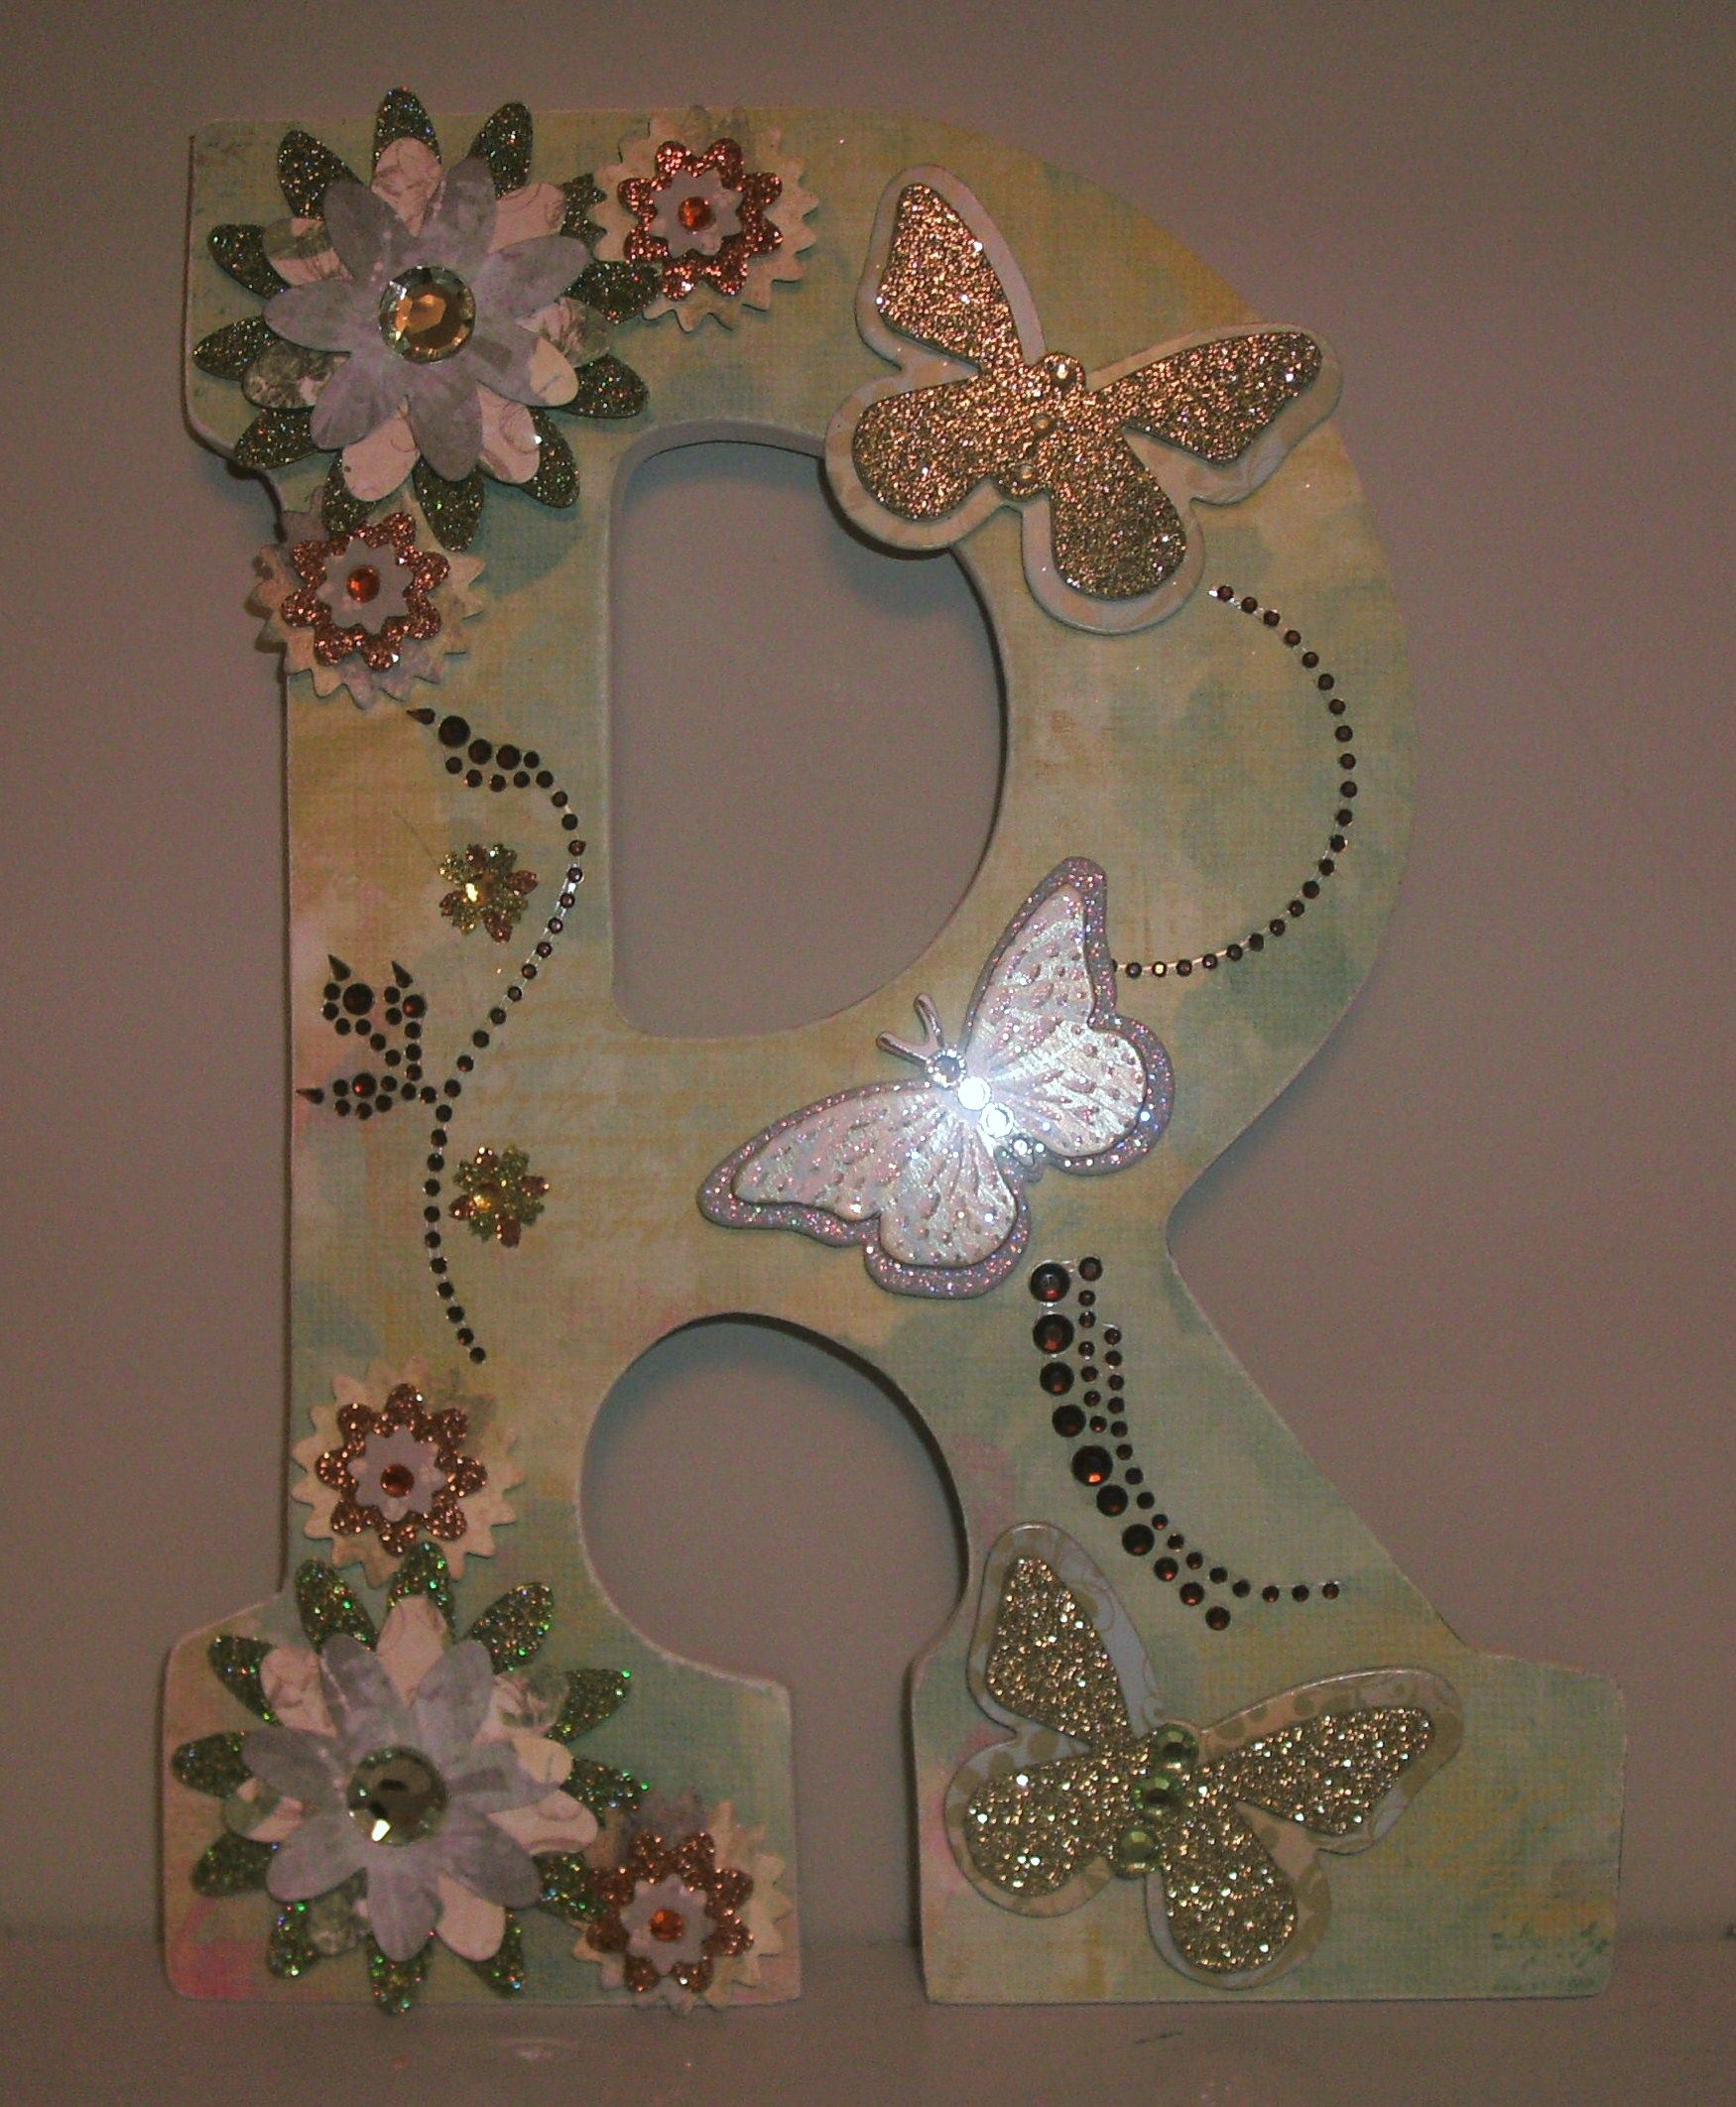 Wooden letters for crafts - Embellished Wood Letters Name Word Letter Craft Granddaughters Had Fun Making Their Own